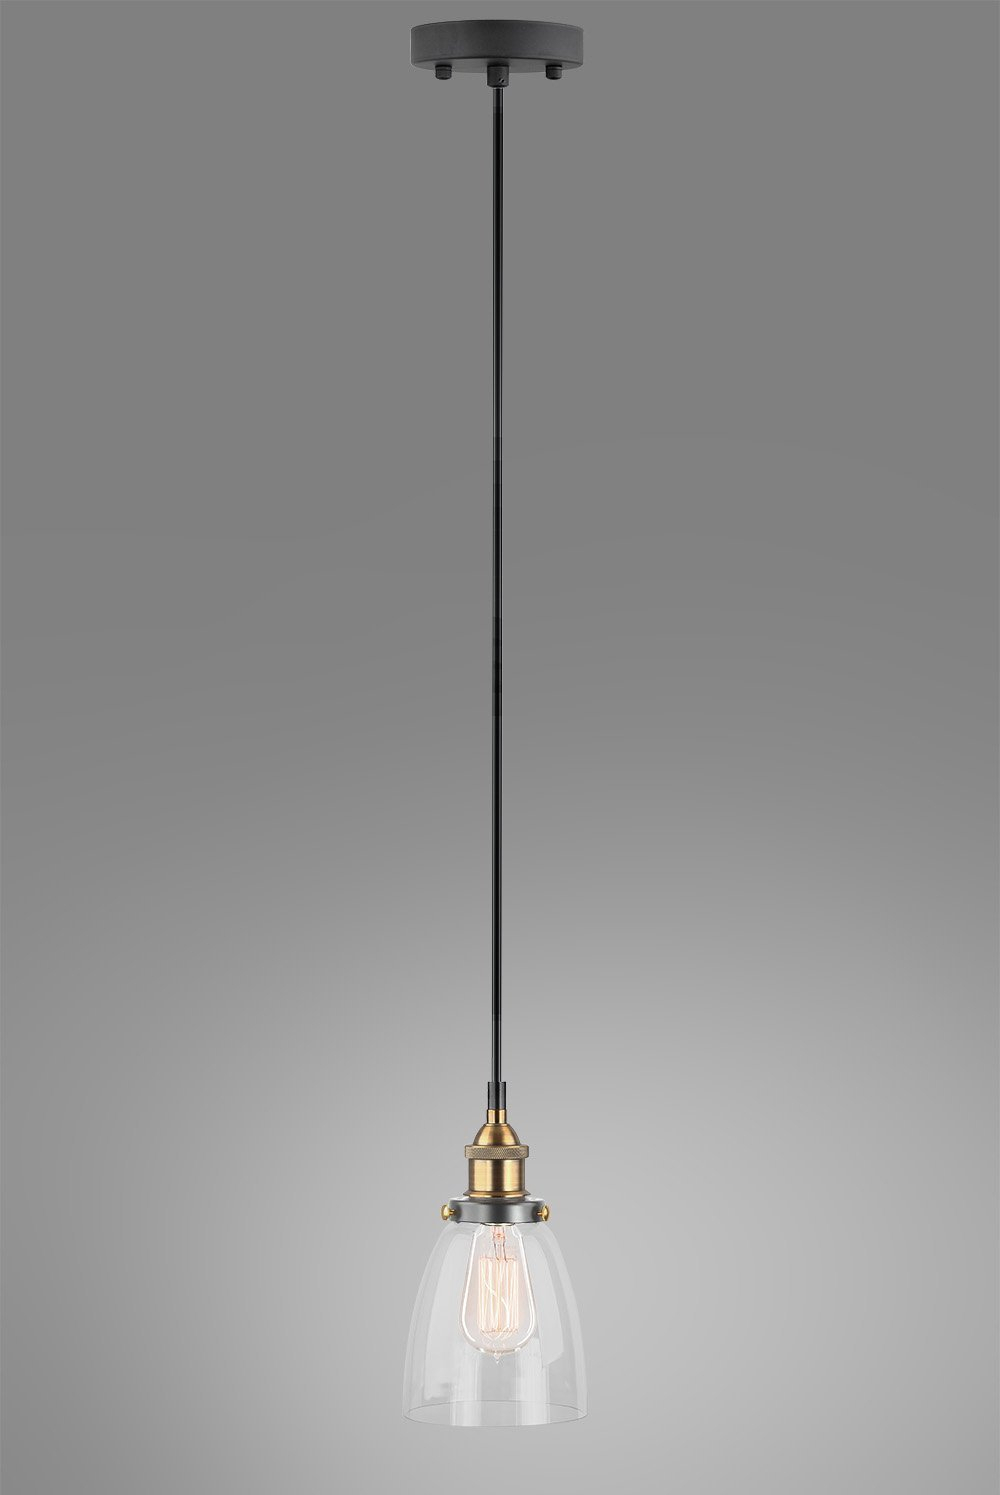 Mercury Row Bundaberg 1 Light Single Bell Pendant Regarding Bundaberg 1 Light Single Bell Pendants (View 6 of 30)